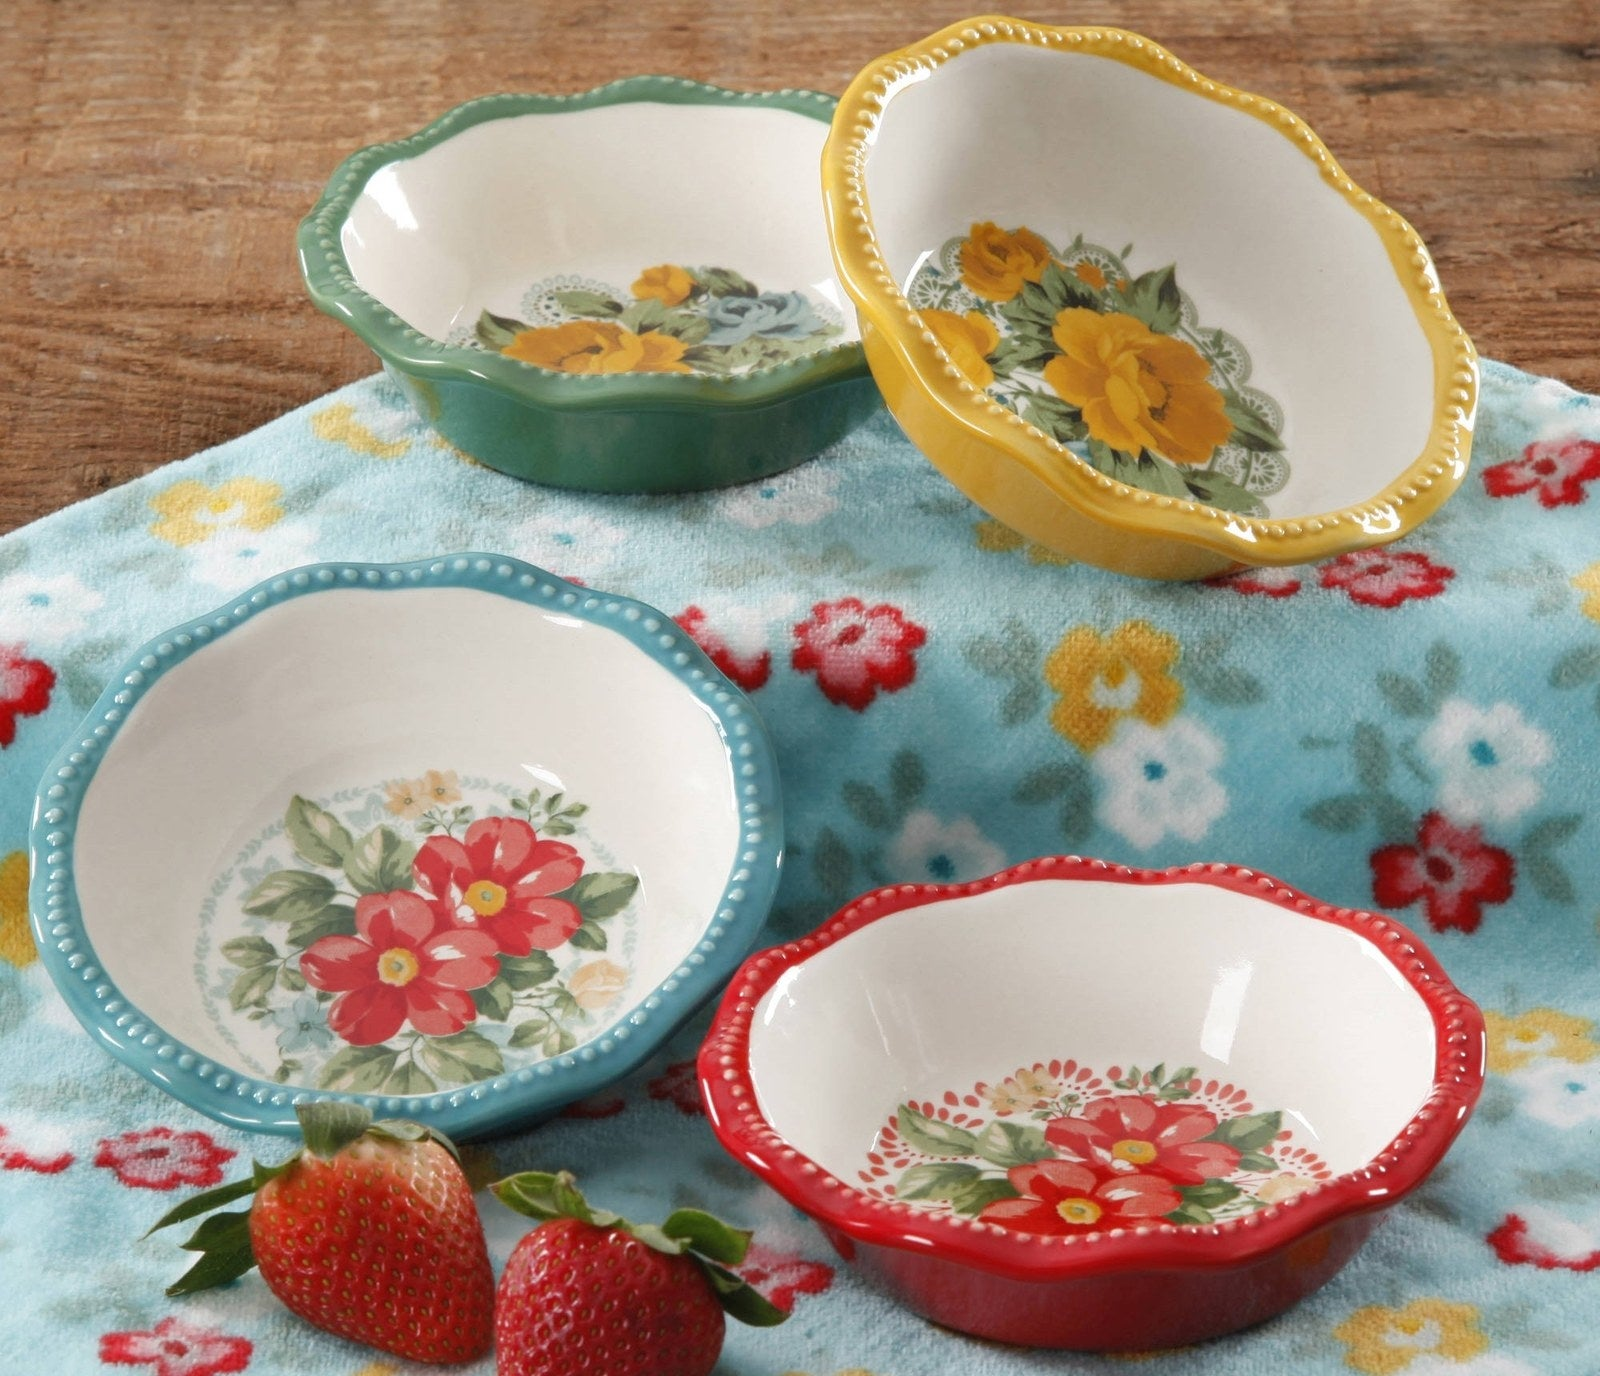 Plates are oven- and dishwasher-safe!Get the from Walmart or Jet for $14.88.